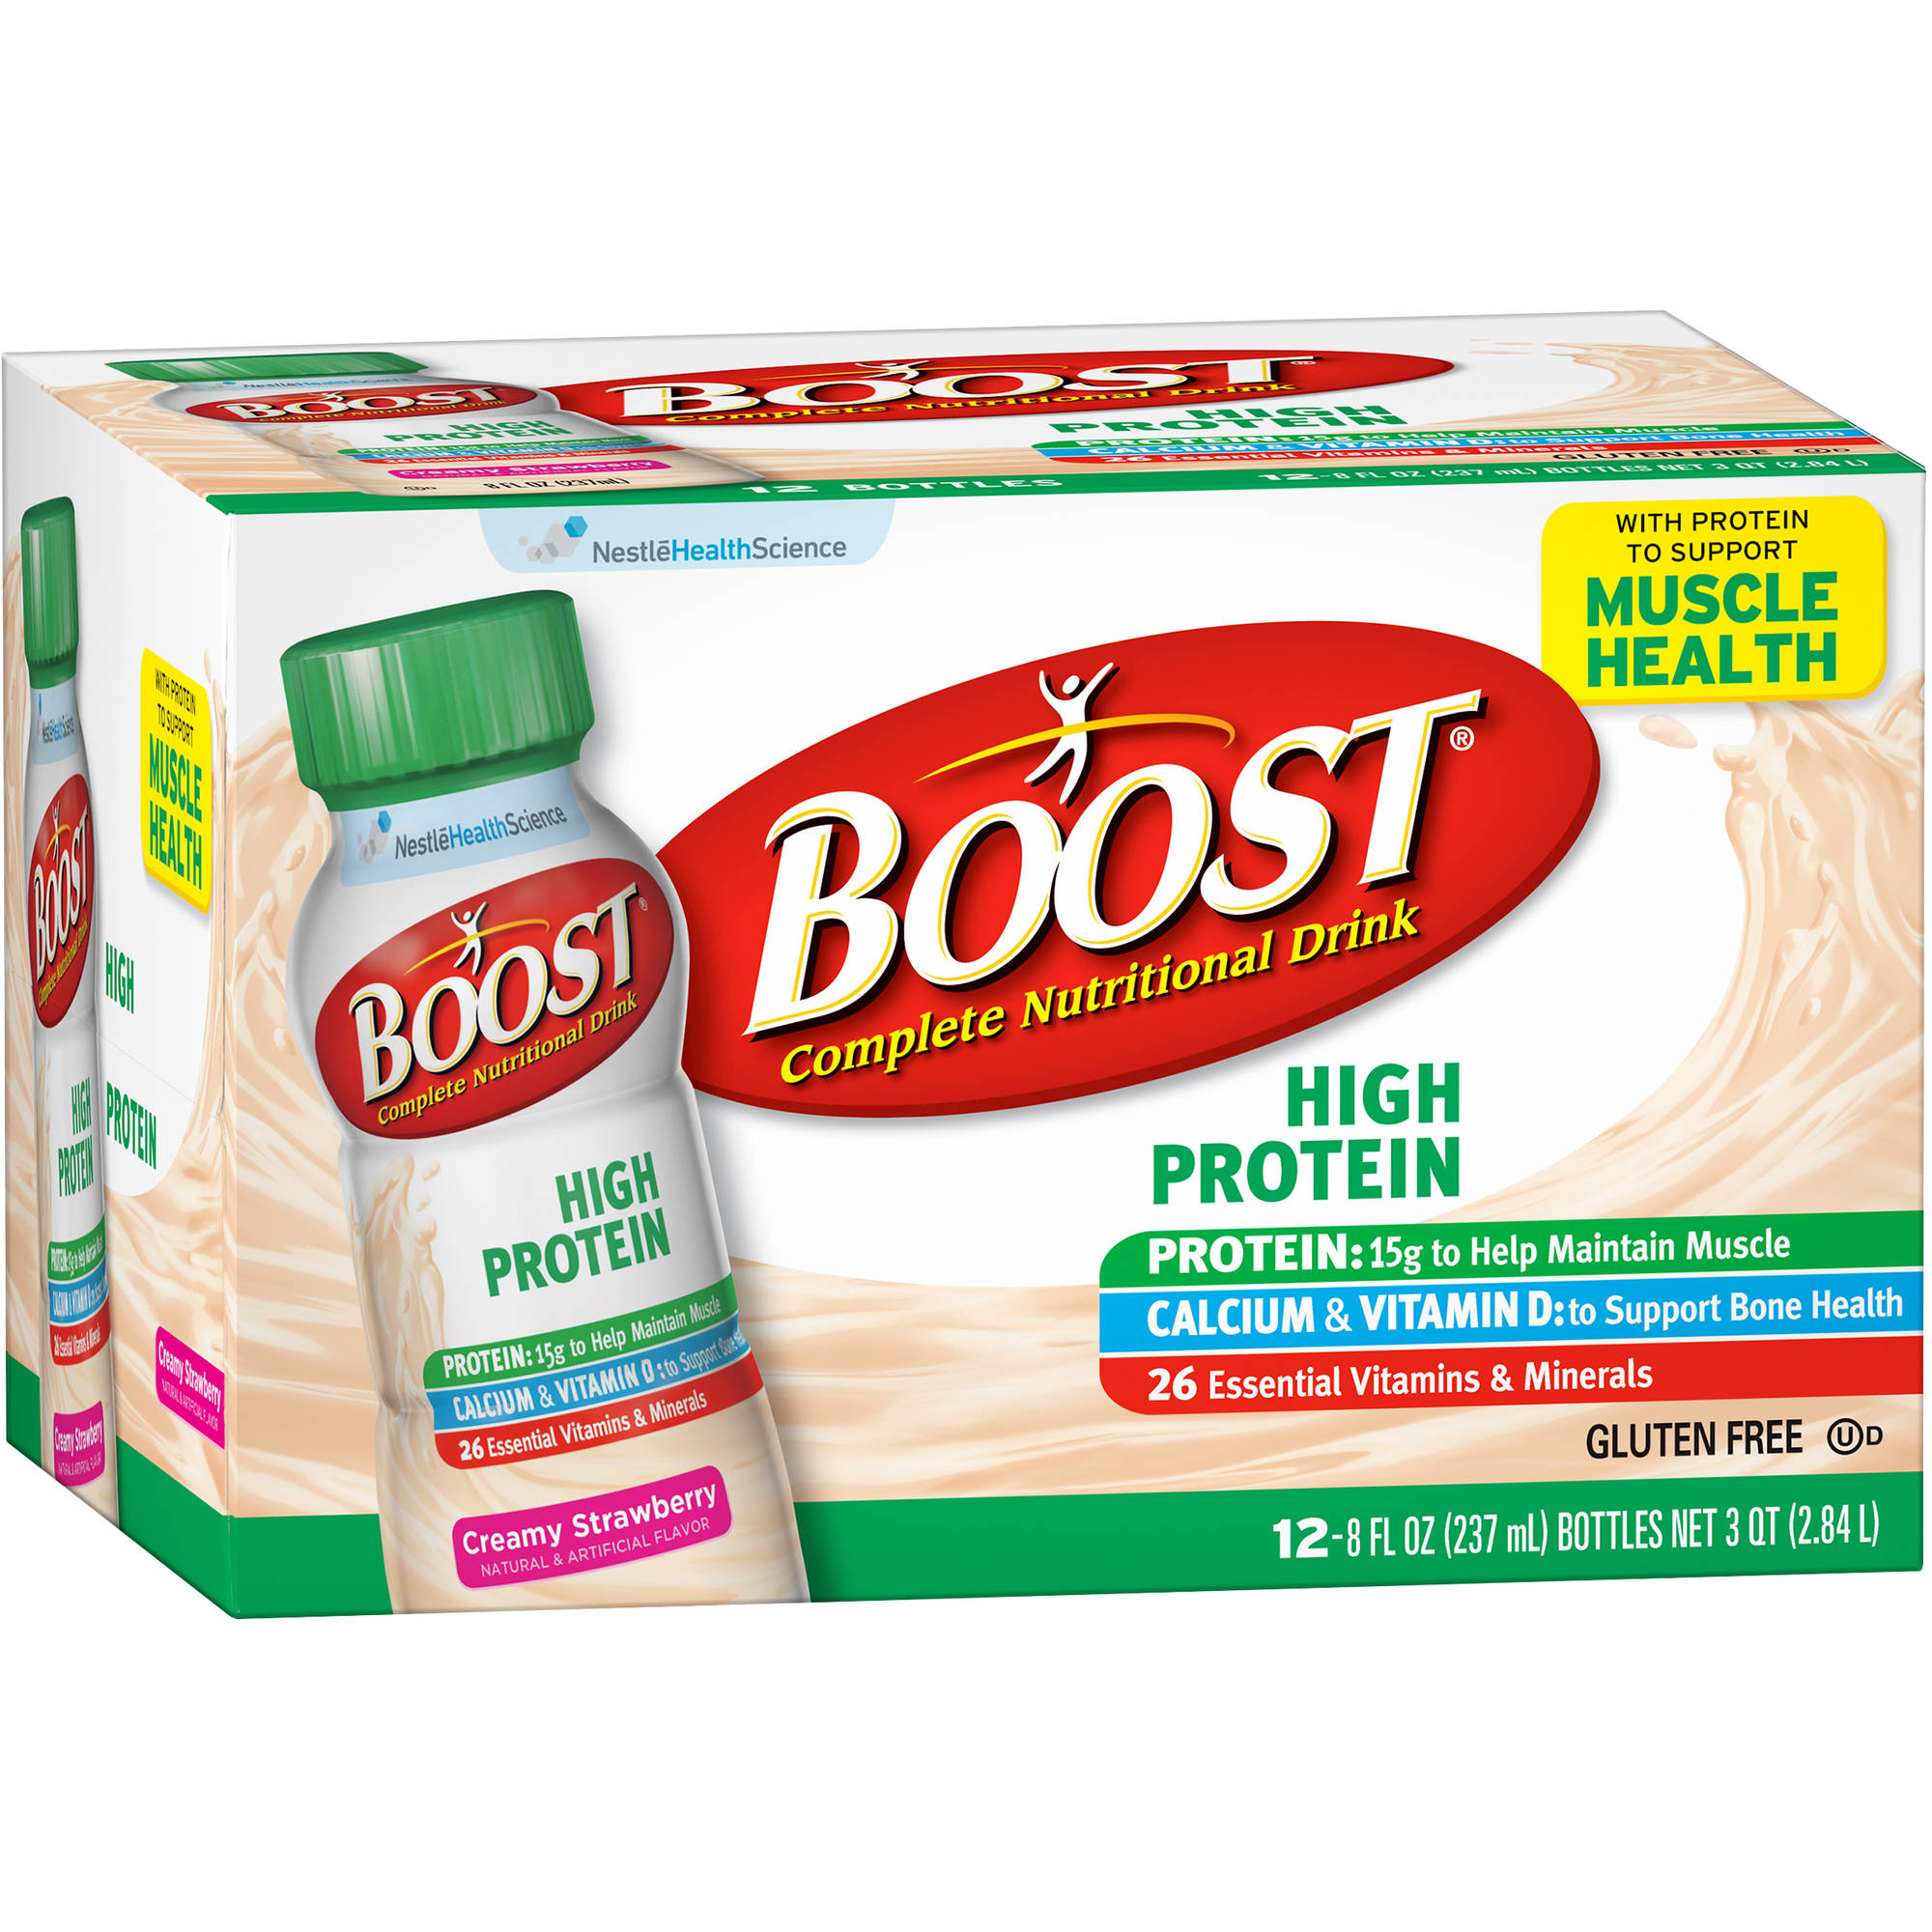 Boost High Protein Creamy Strawberry Complete Nutritional Drink, 8 Ounce, 12 Count